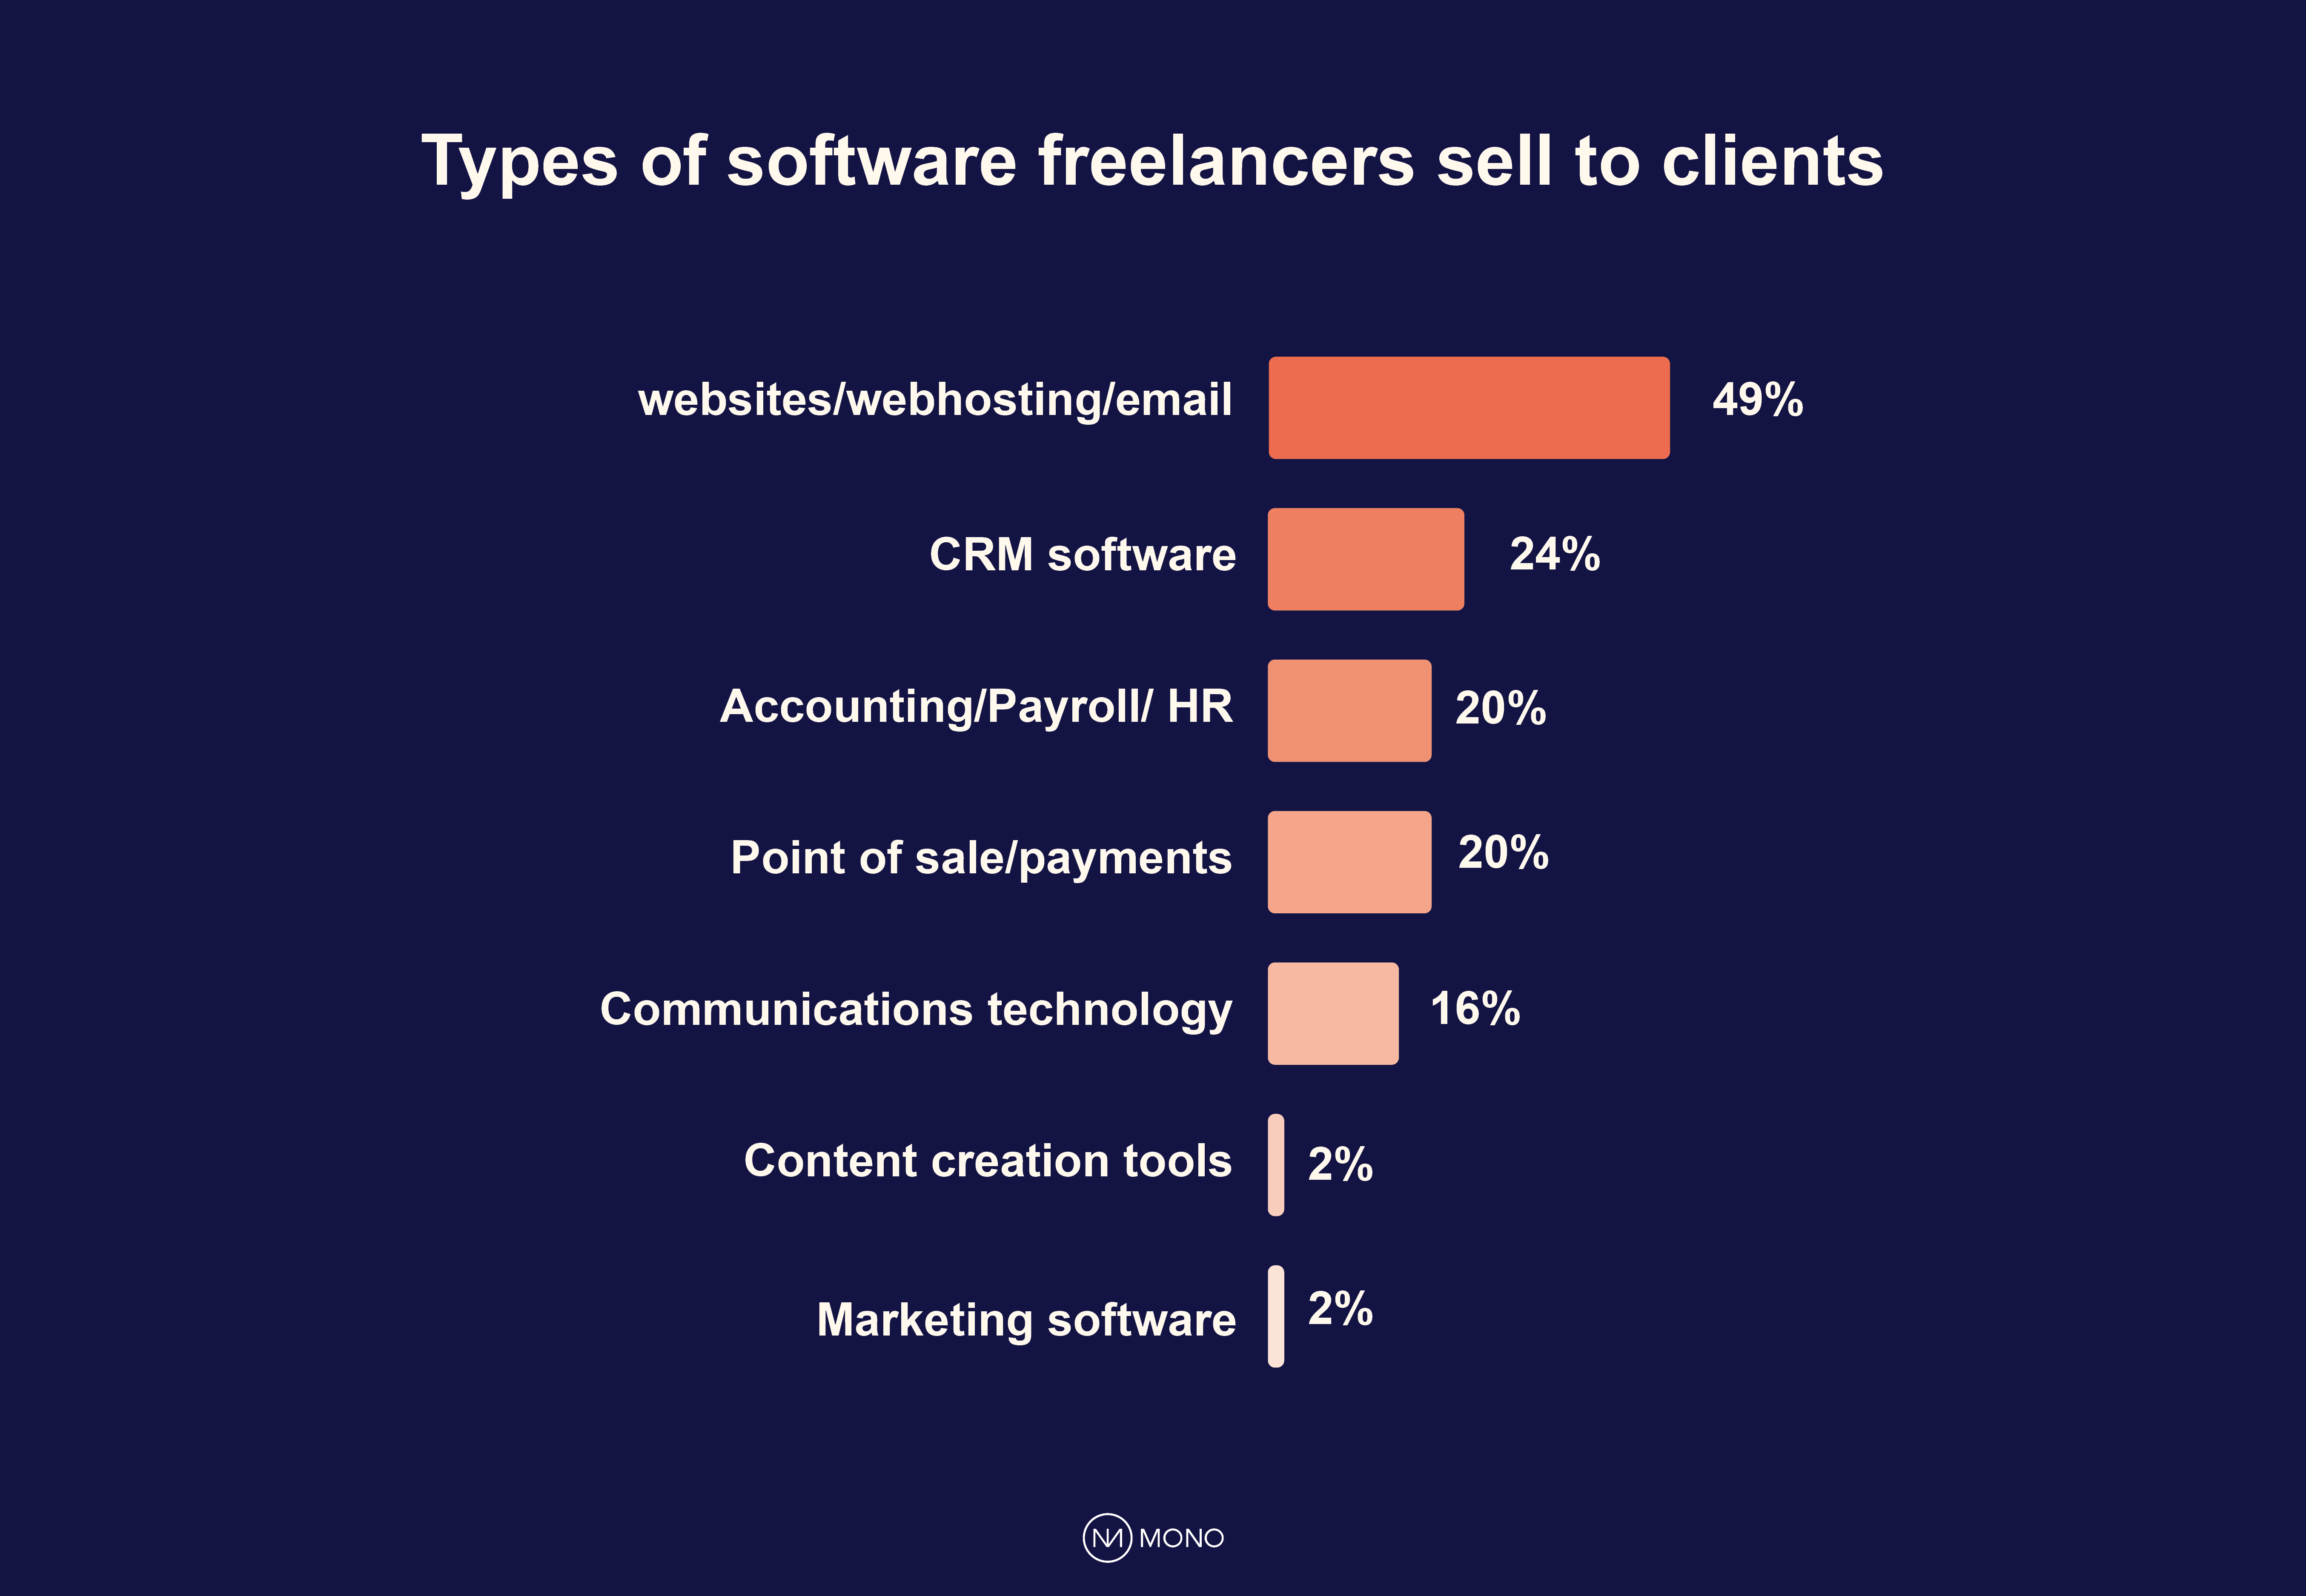 Types of software freelancers sell to clients